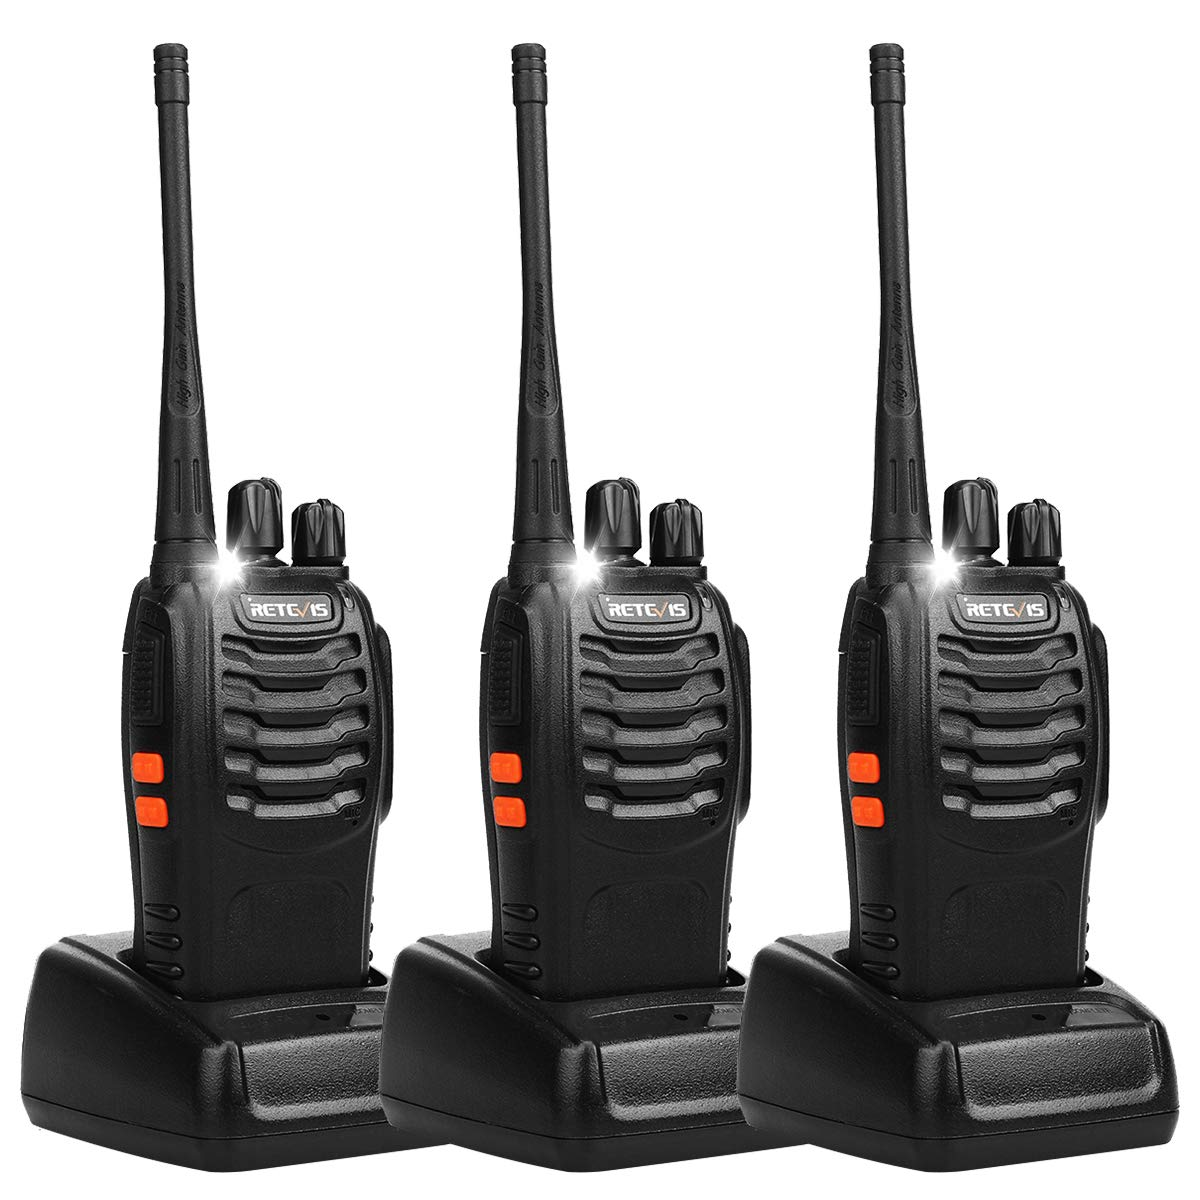 Retevis H-777 Two Way Radios Long Range UHF 400-470MHz 16CH CTCSS/DCS Walkie Talkies with USB Charger (3 Pack)